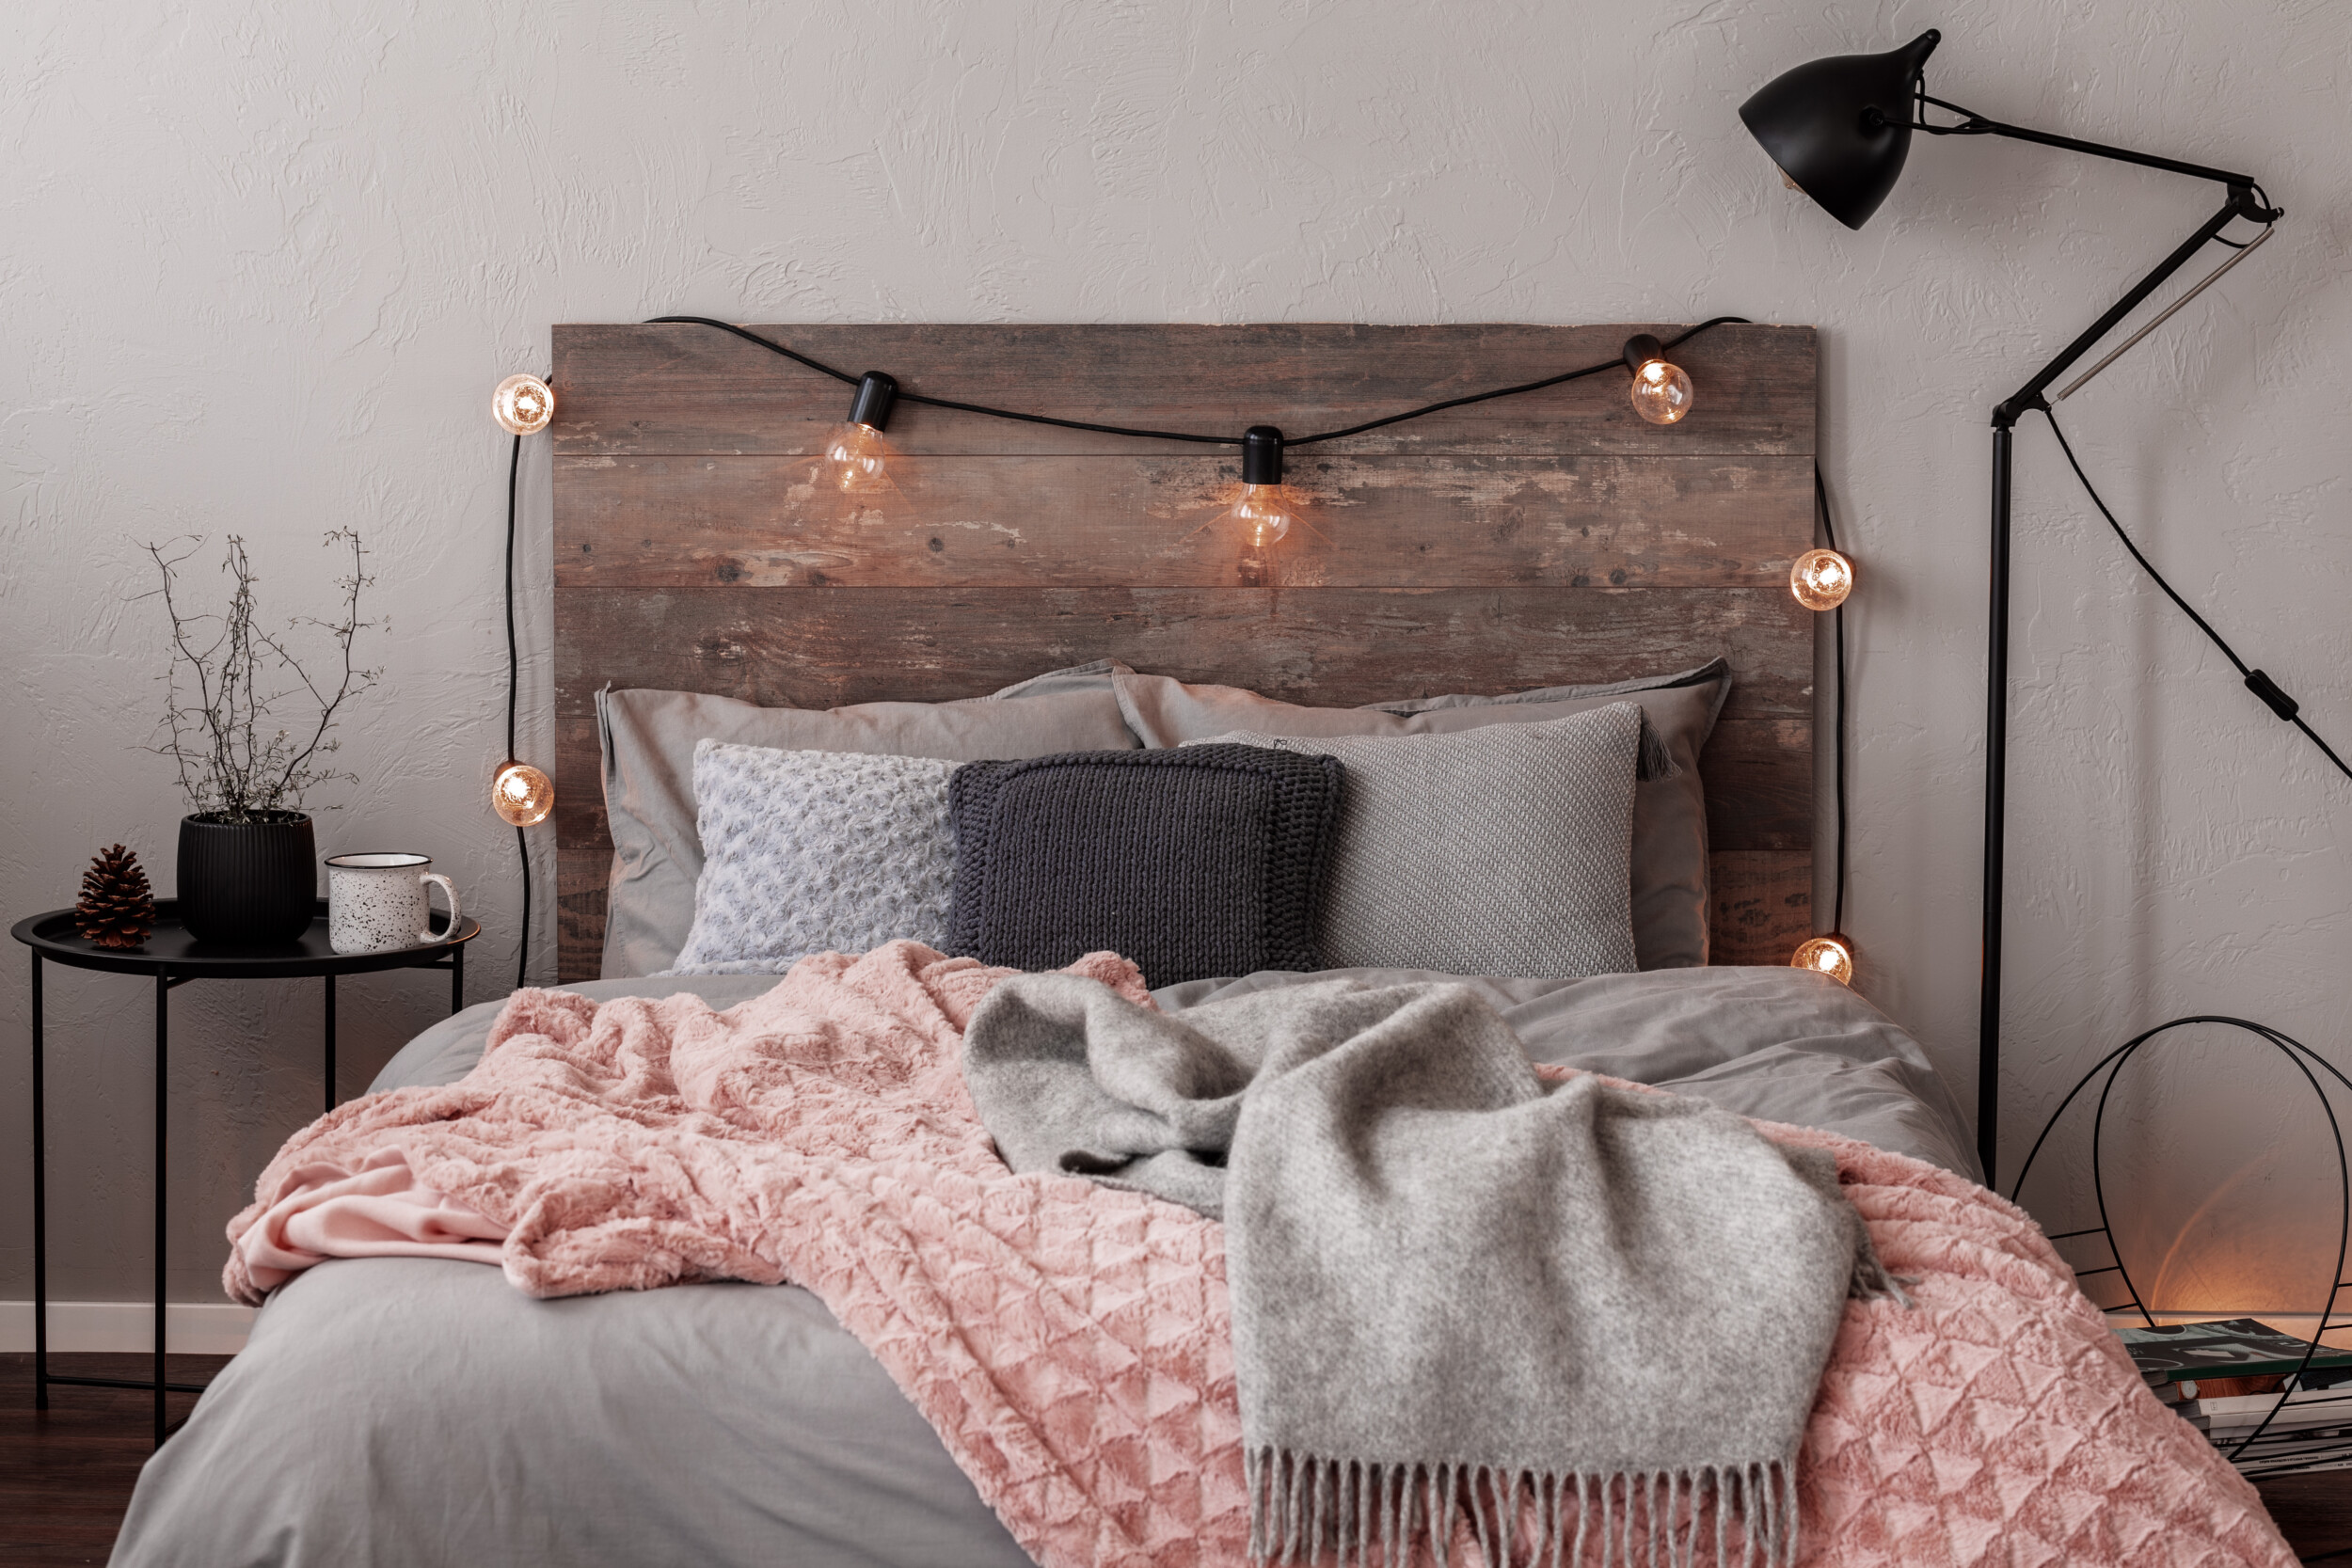 bedding with oversized blanket